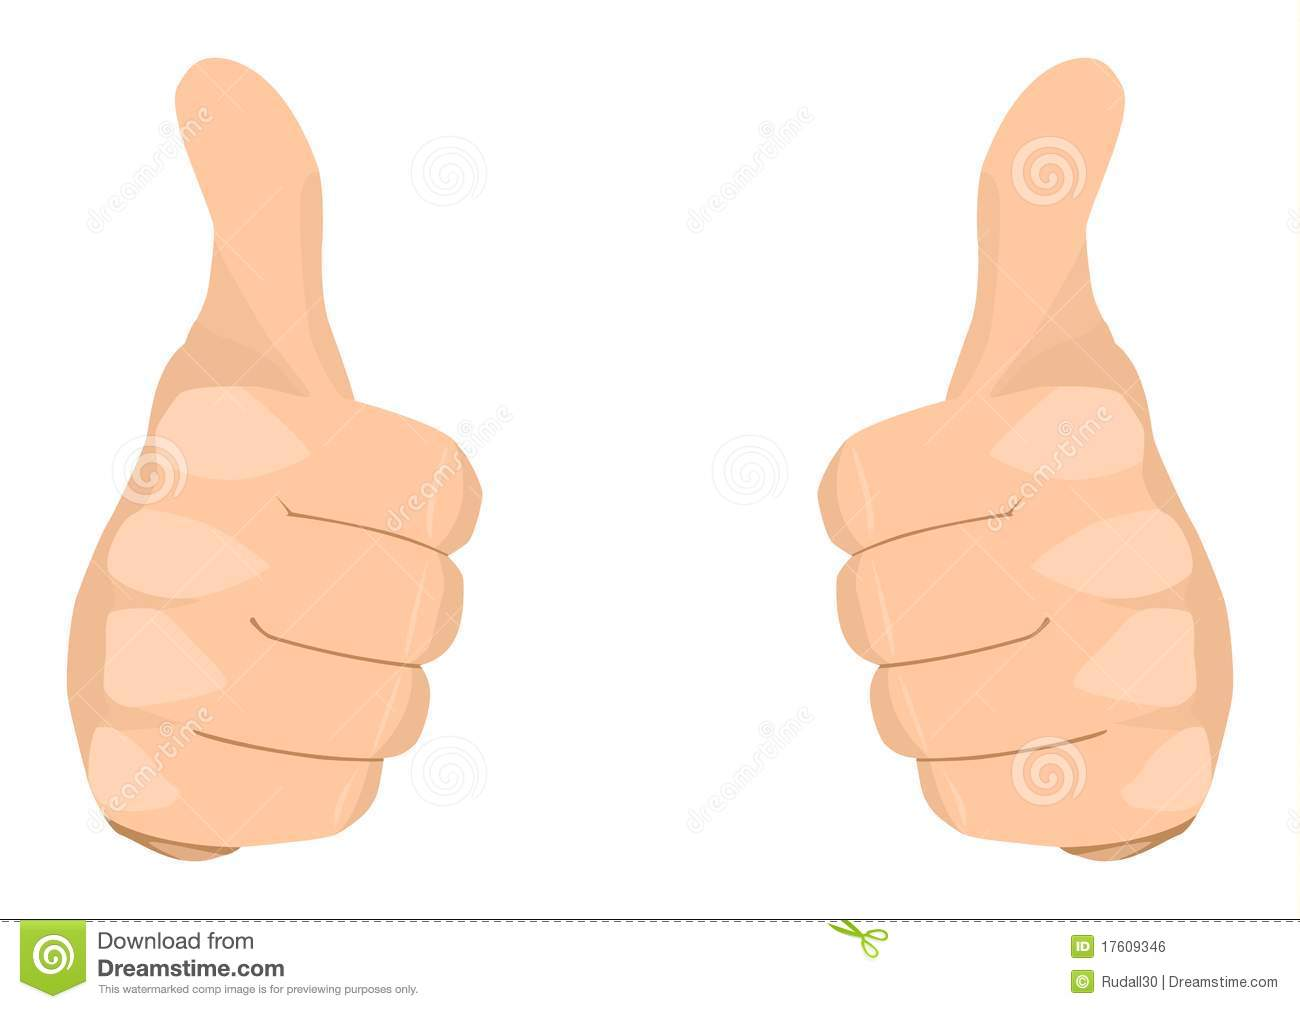 2 thumbs up clipart - ClipartFest svg free stock